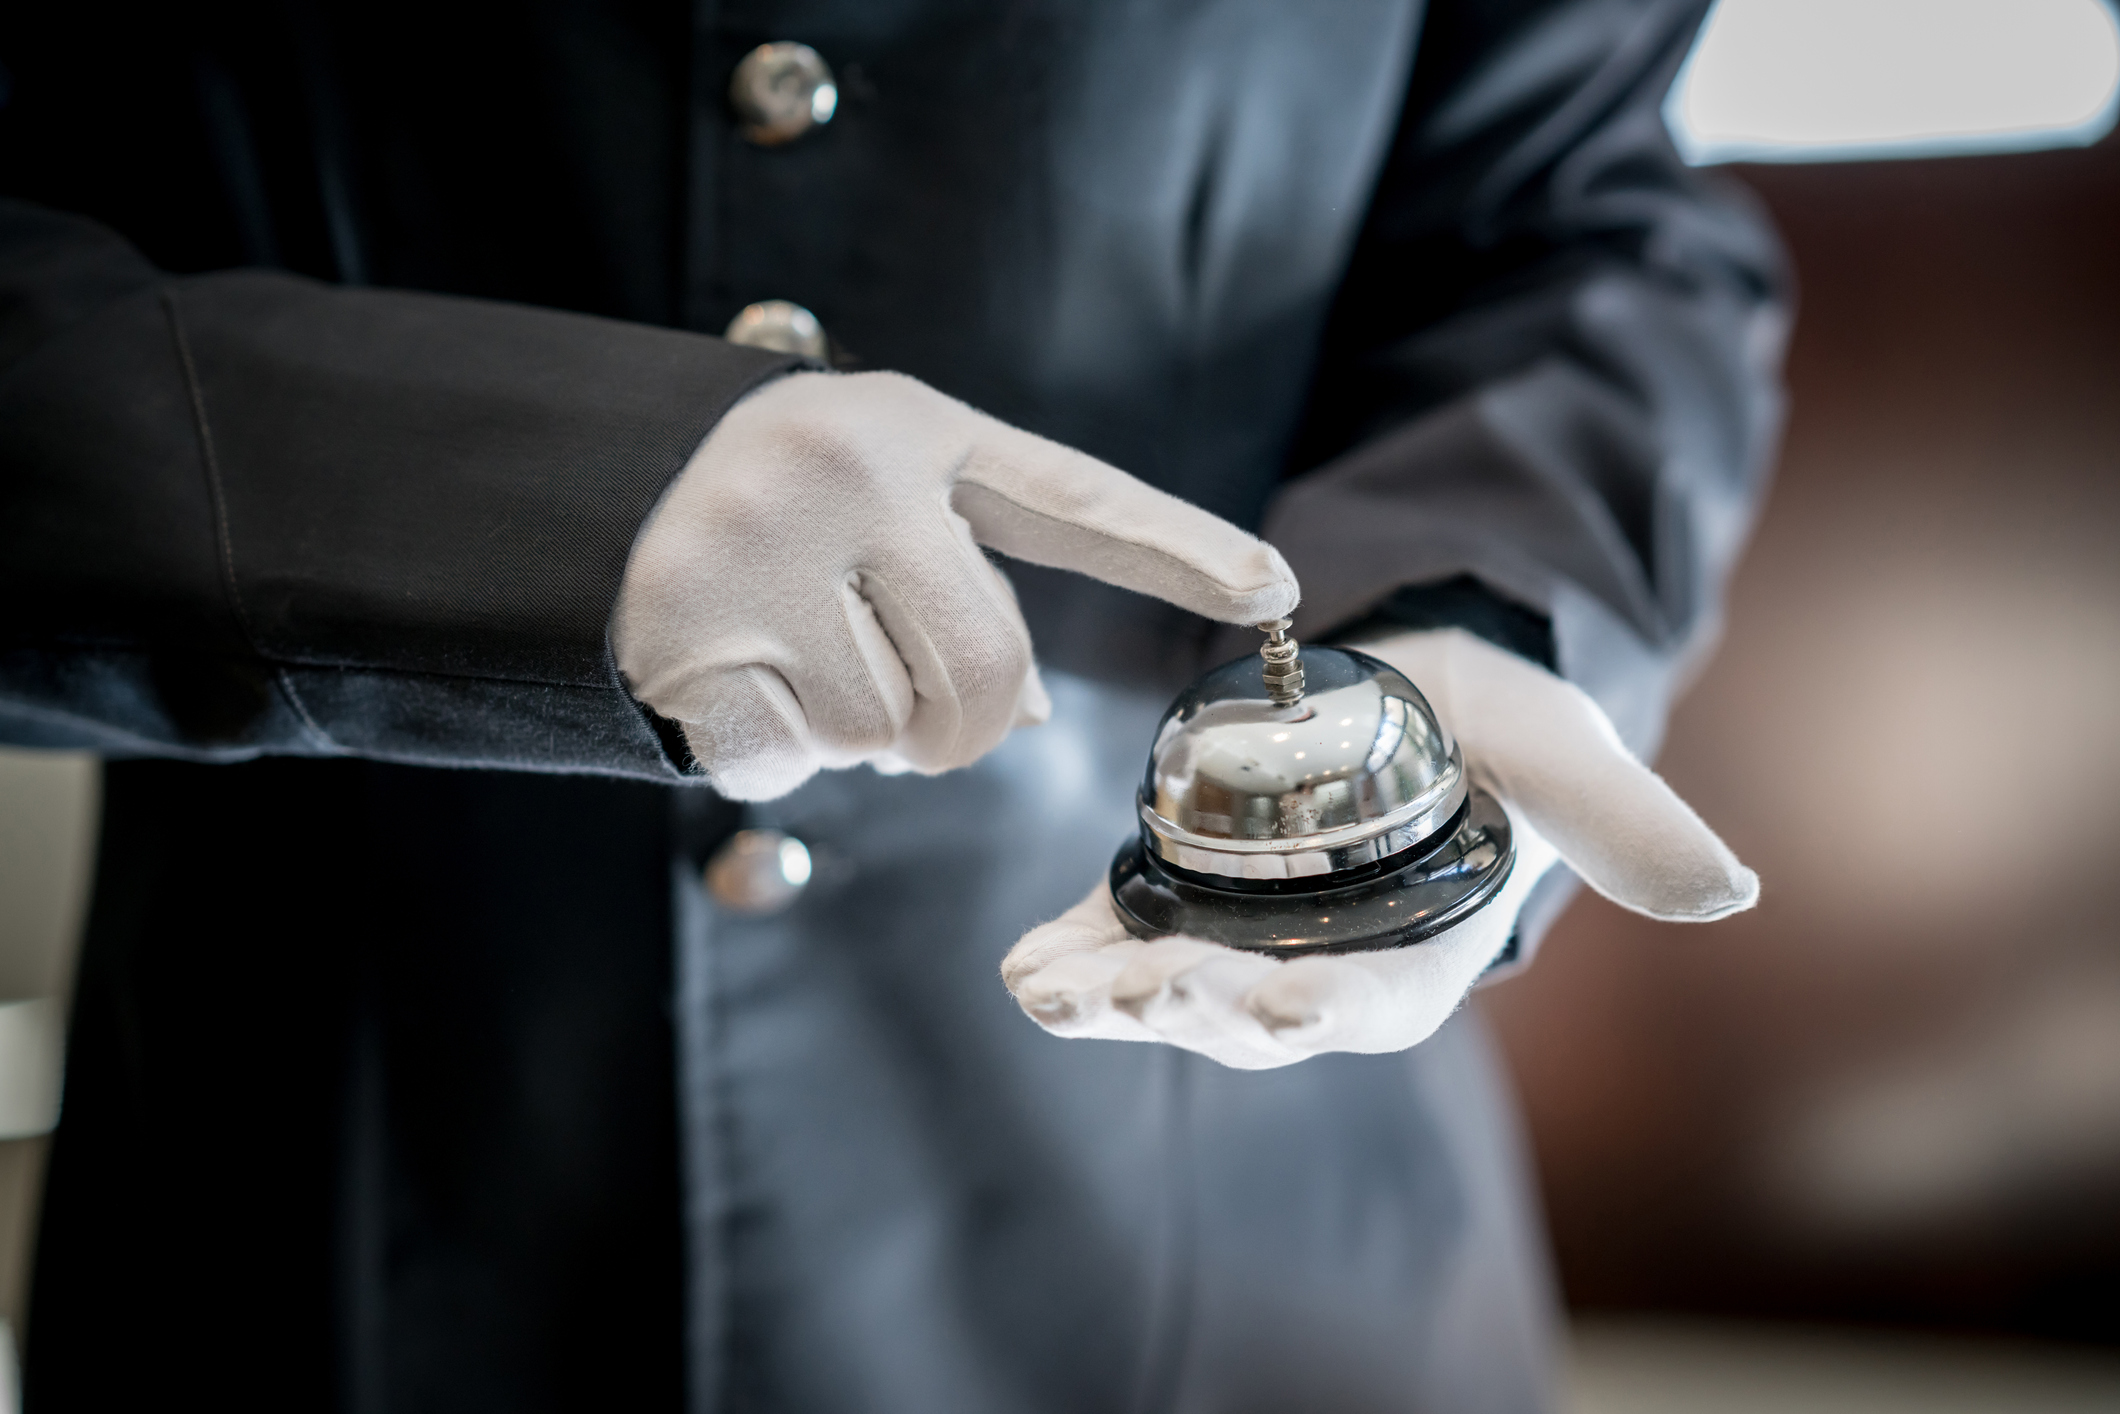 A bell boy at a hotel ringing the bell using white gloves